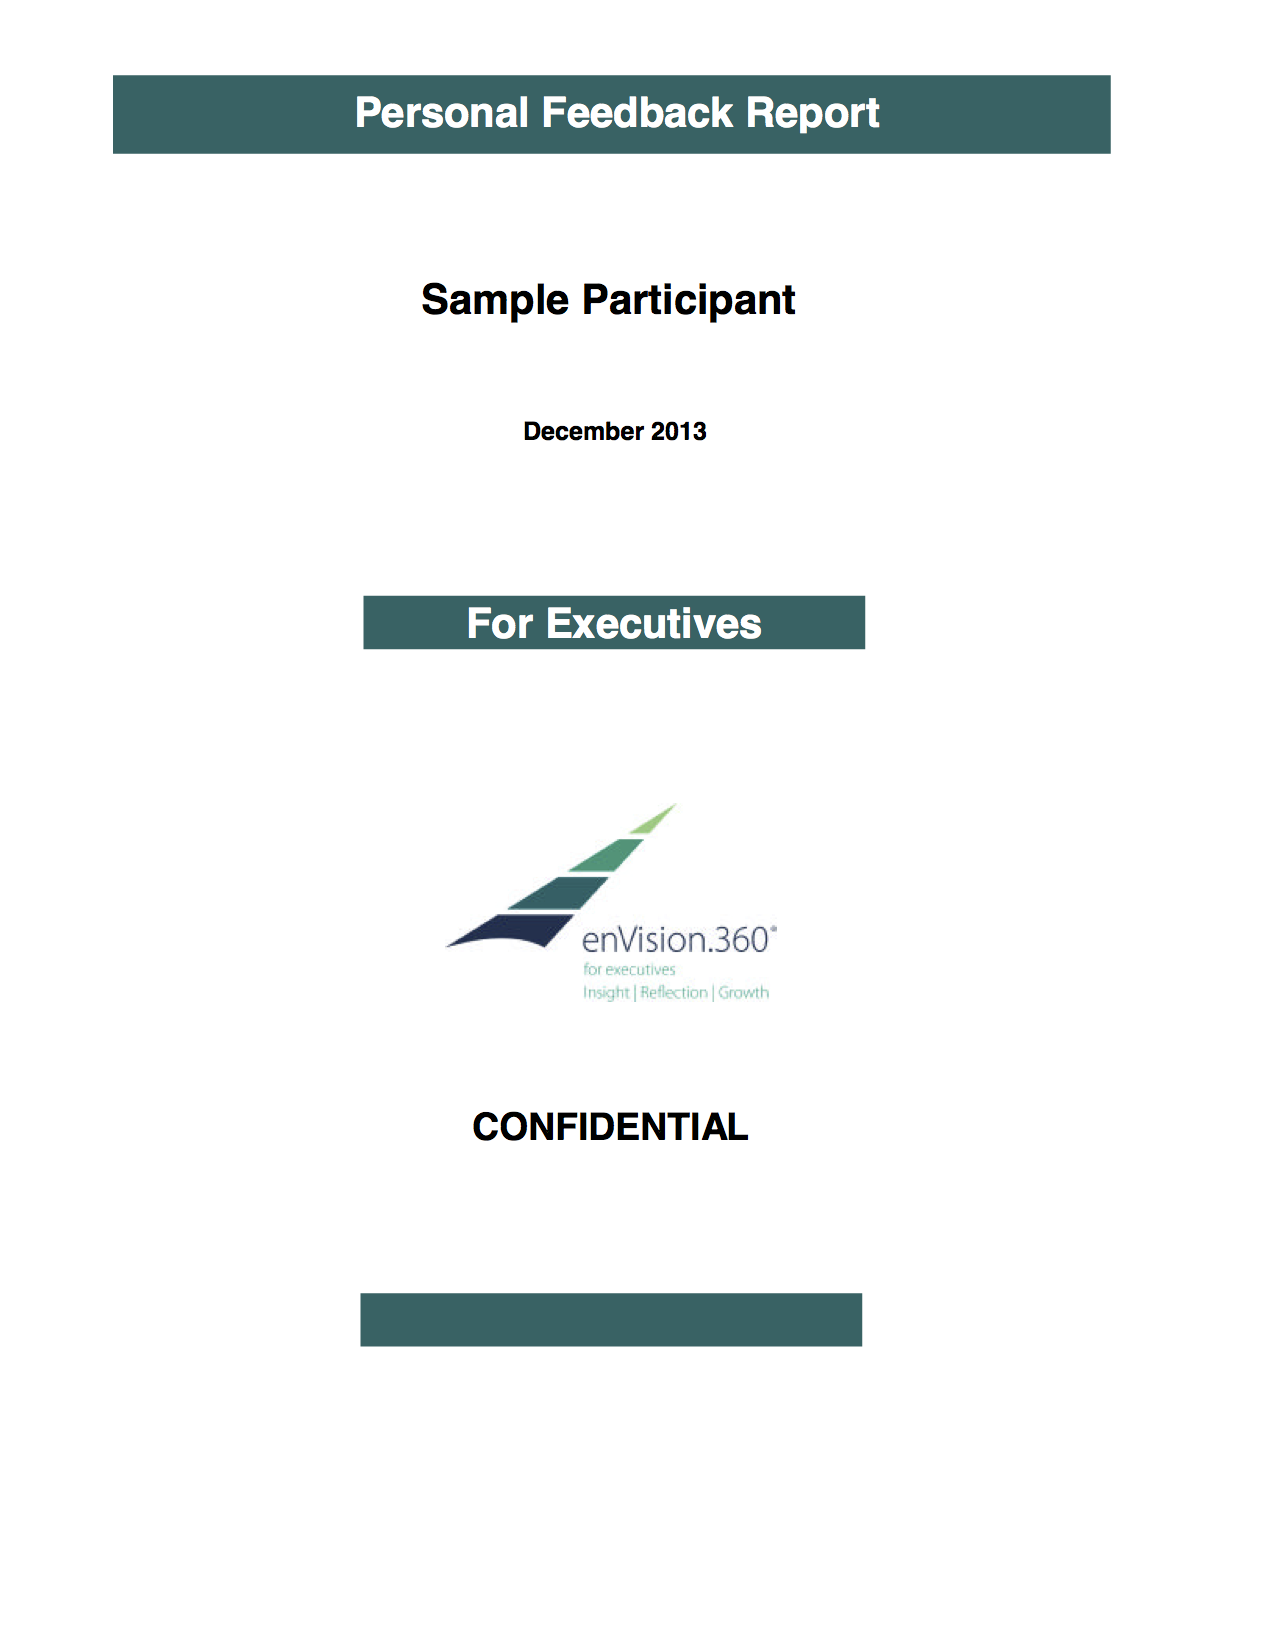 enVision.360 Sample Executive Report